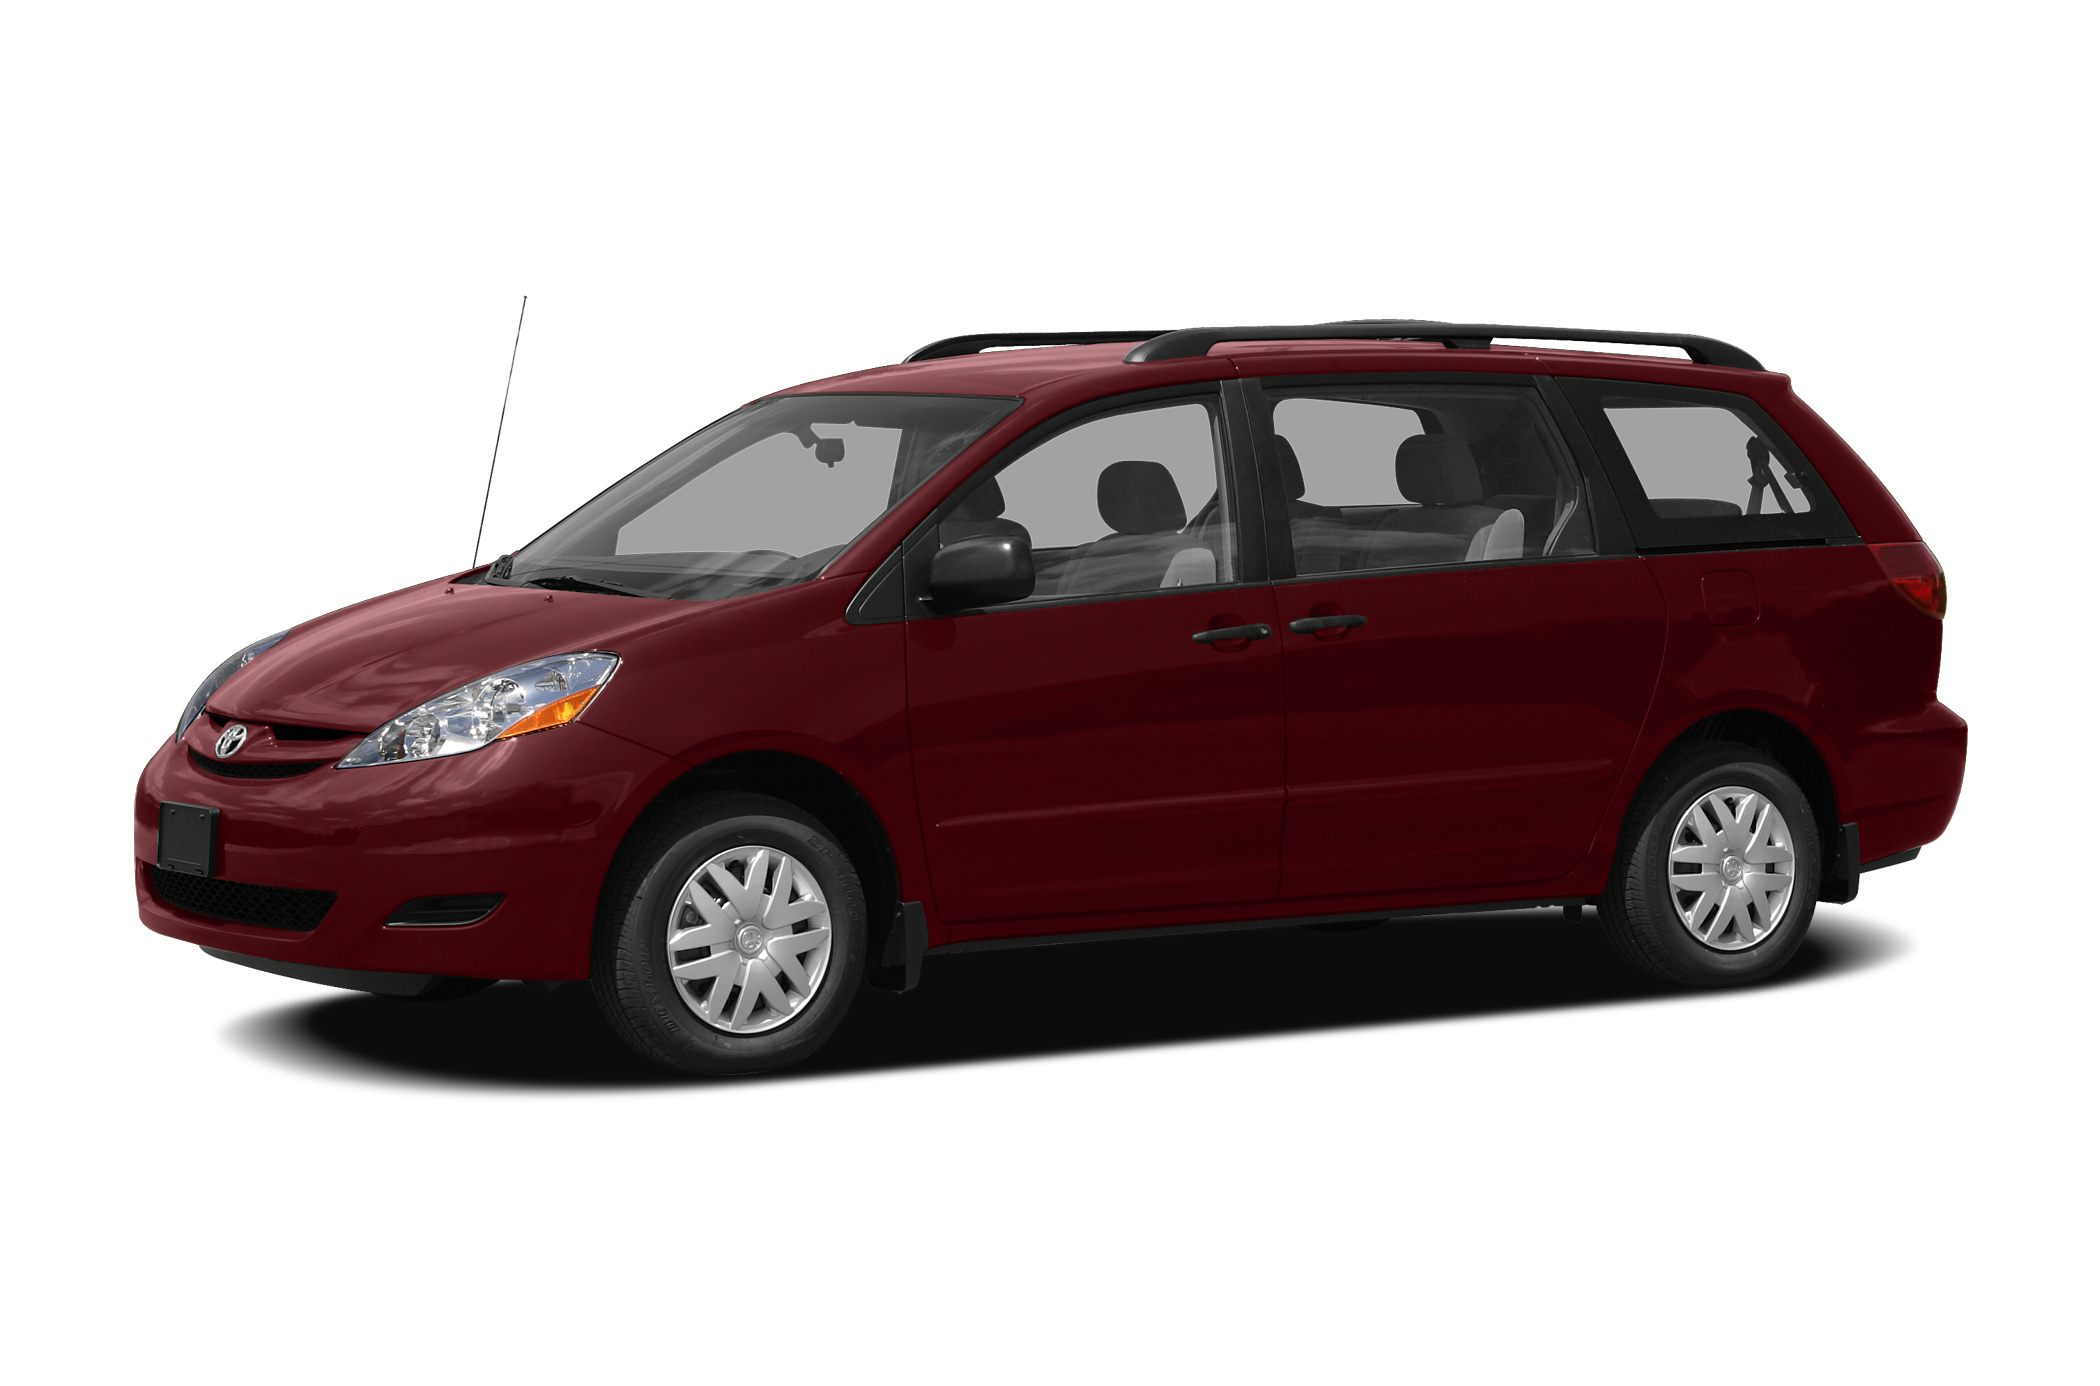 2007 Toyota Sienna CE Vehicle Detailed Recent Oil Change and Passed Dealer Inspection Low miles